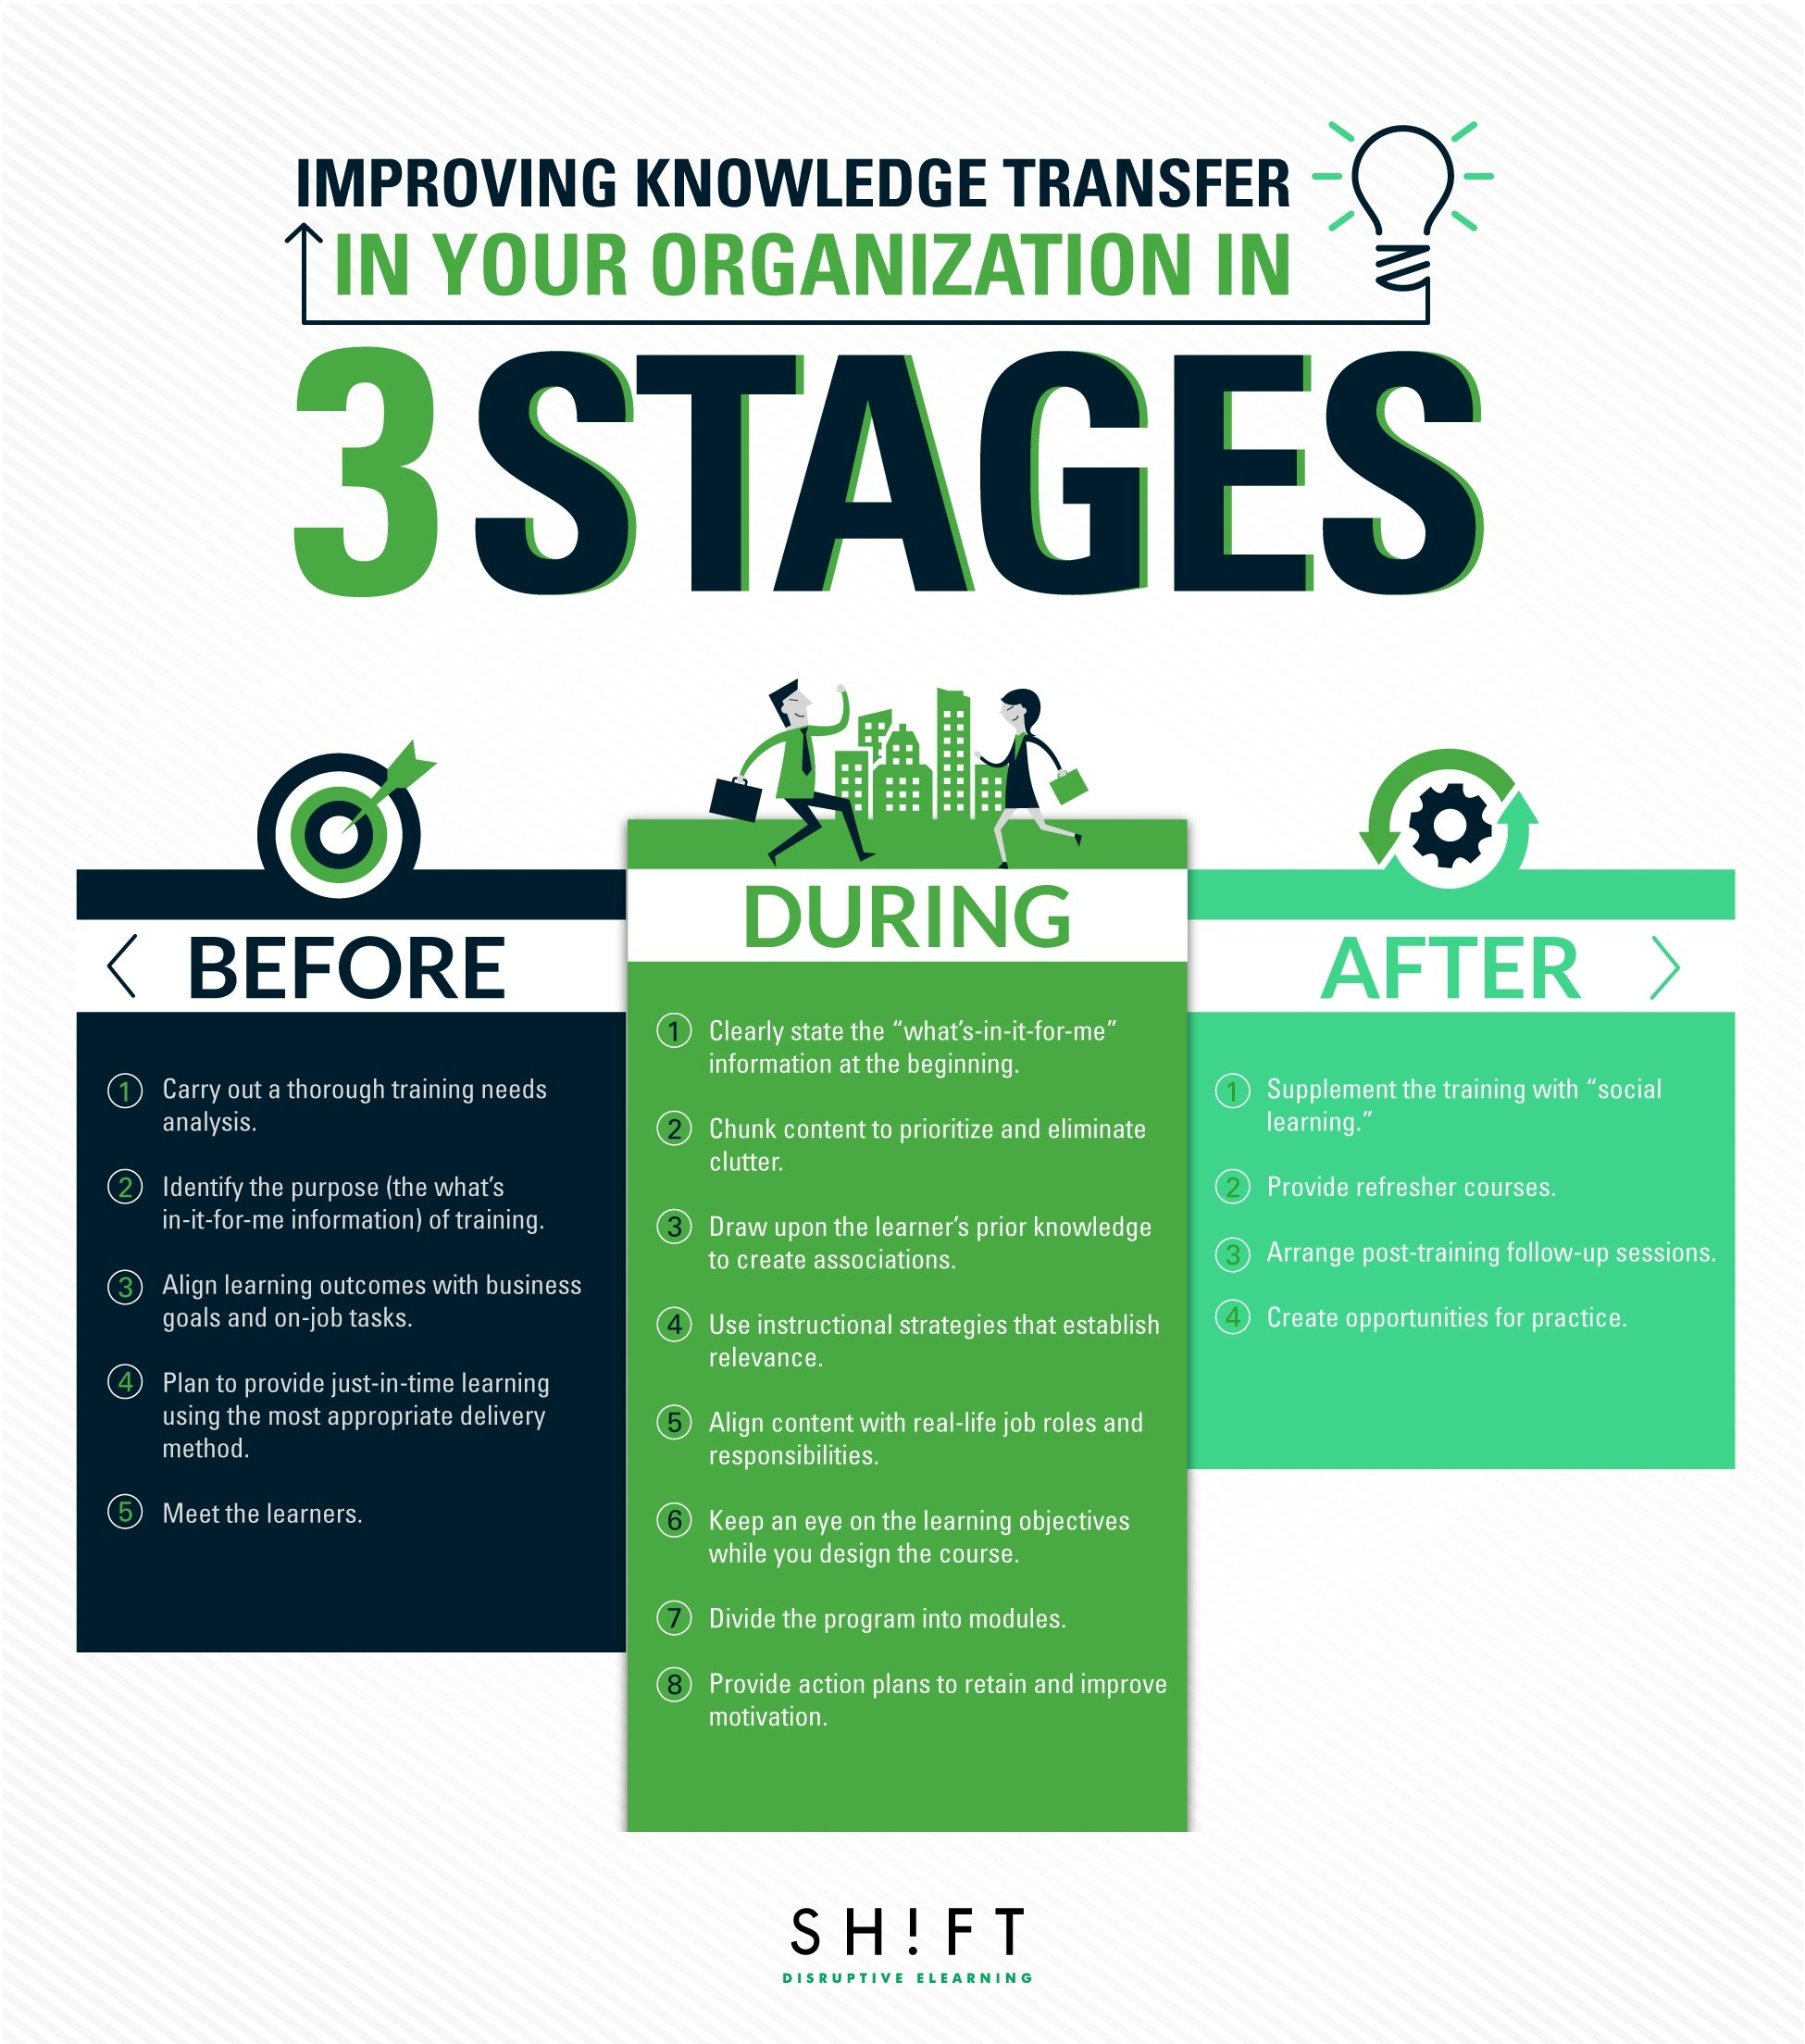 Before During And After Training Improving Knowledge Transfer In